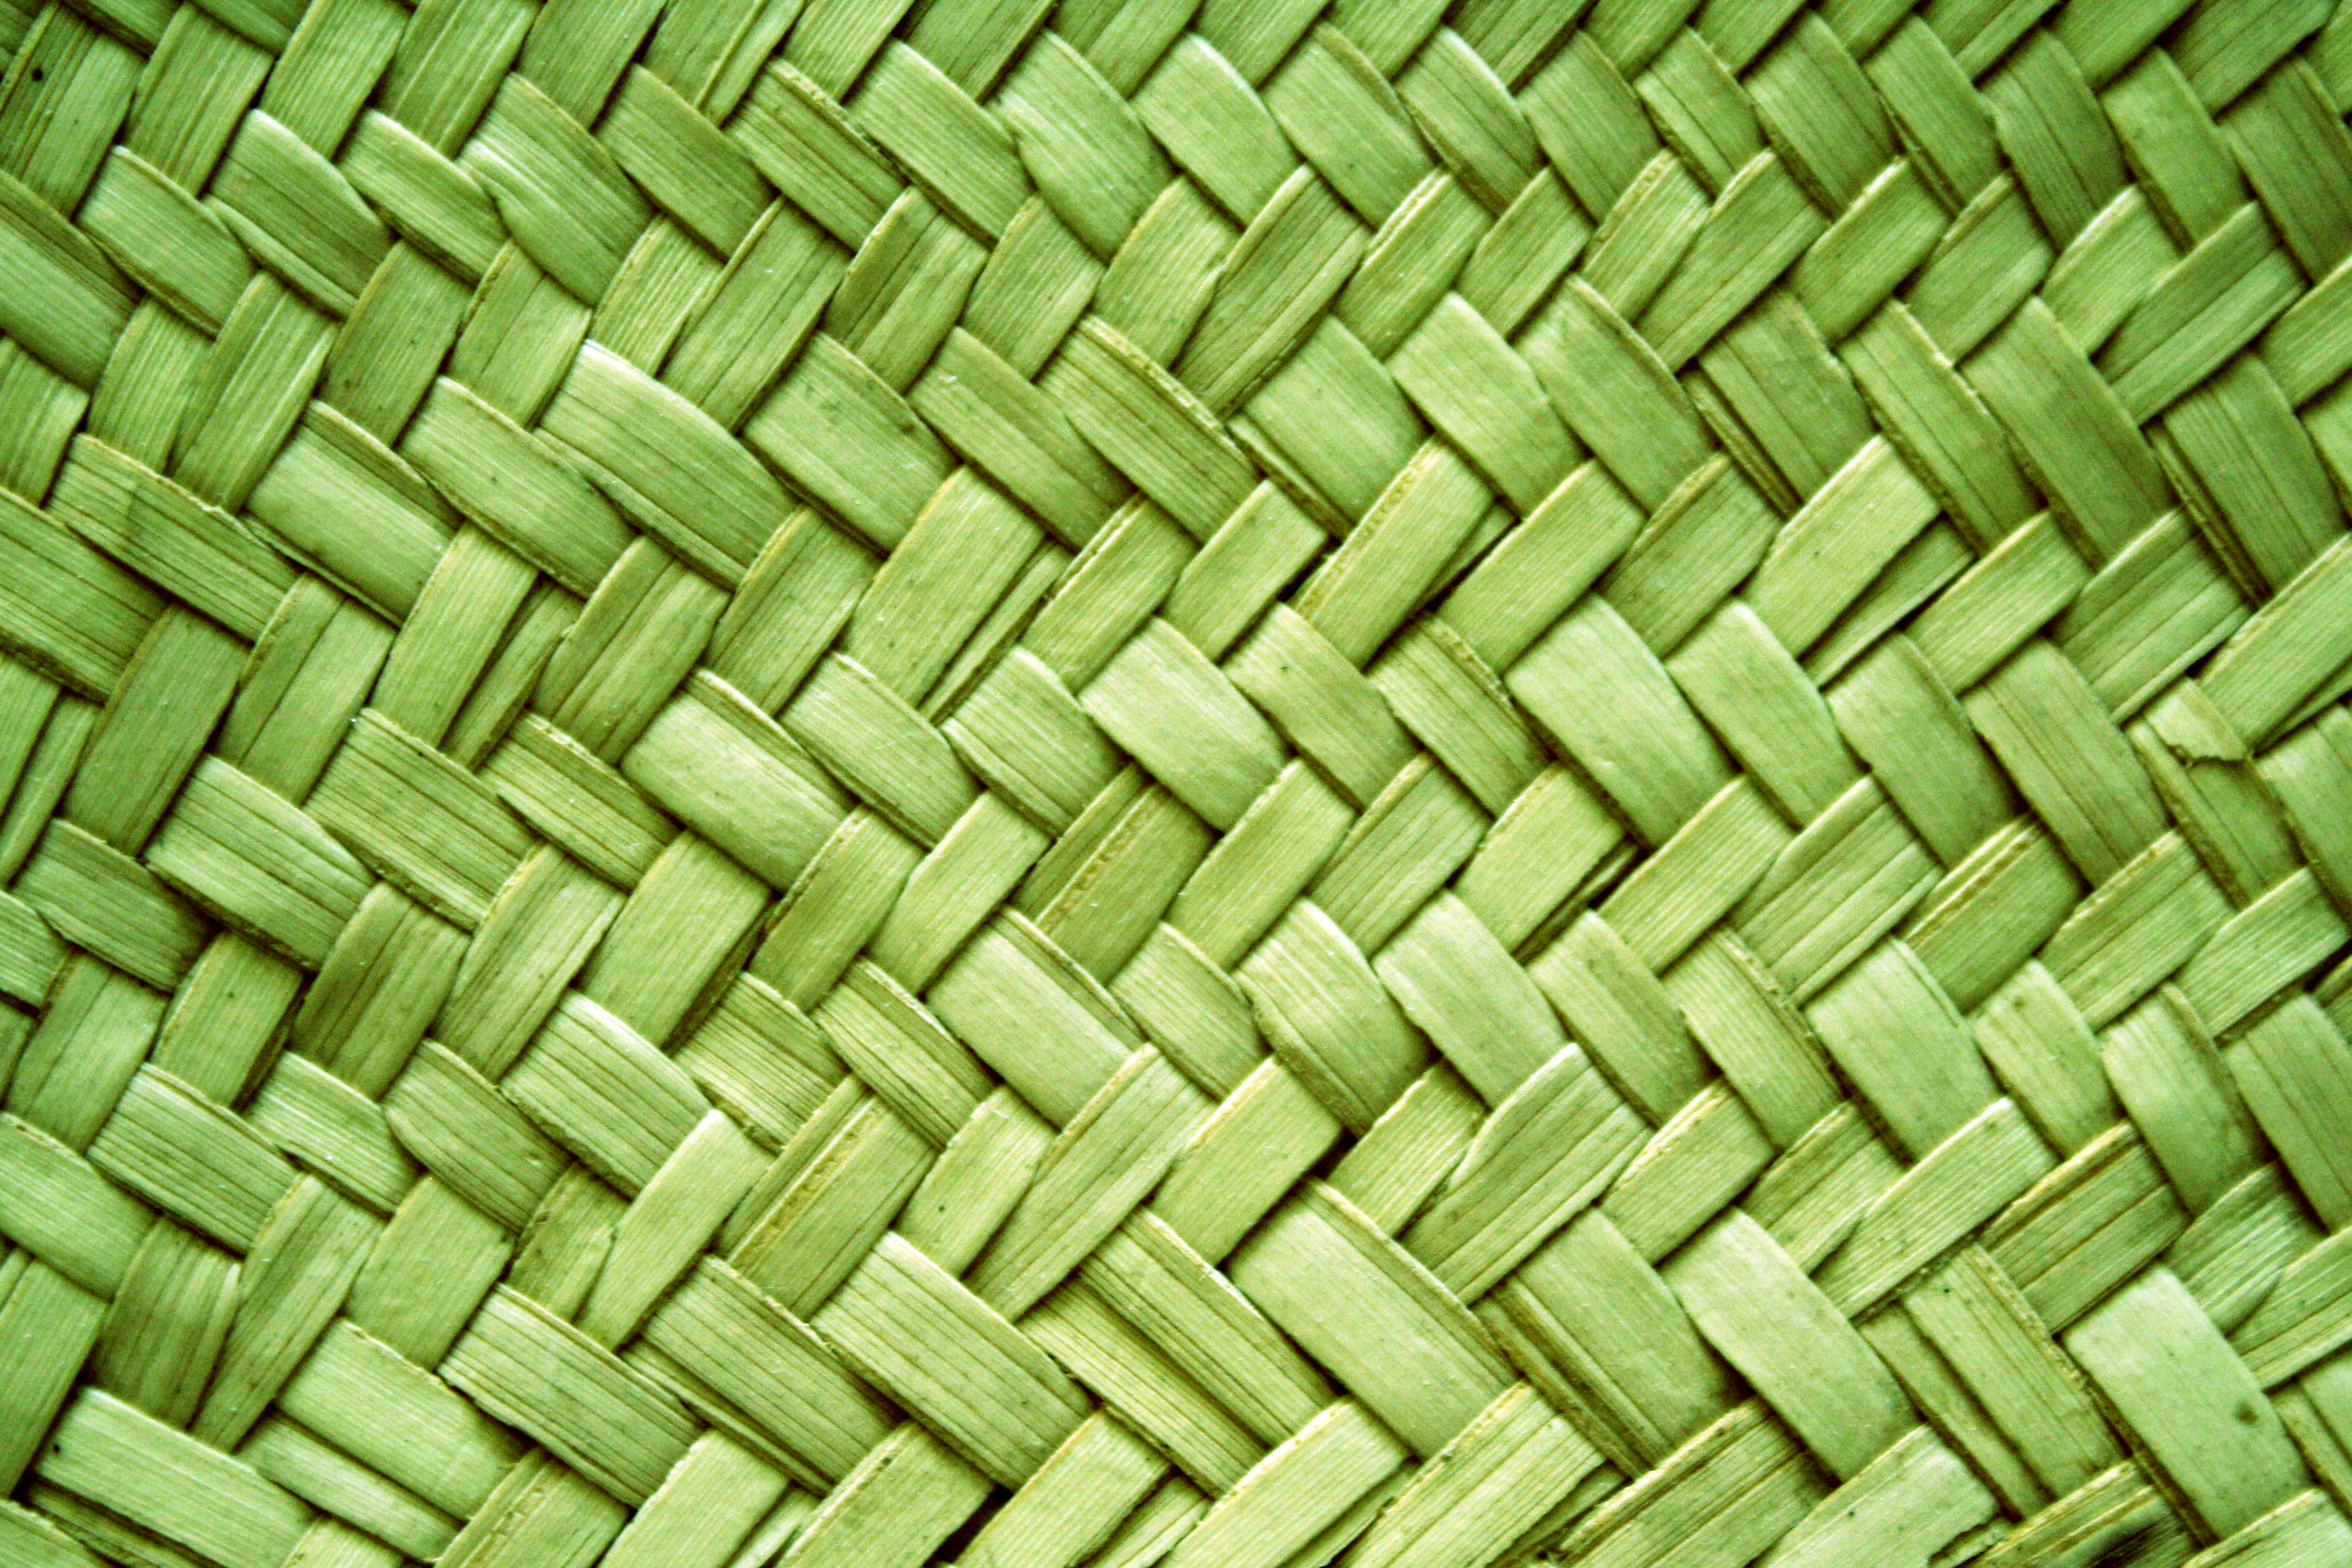 Green Woven Straw Texture Picture Free Photograph